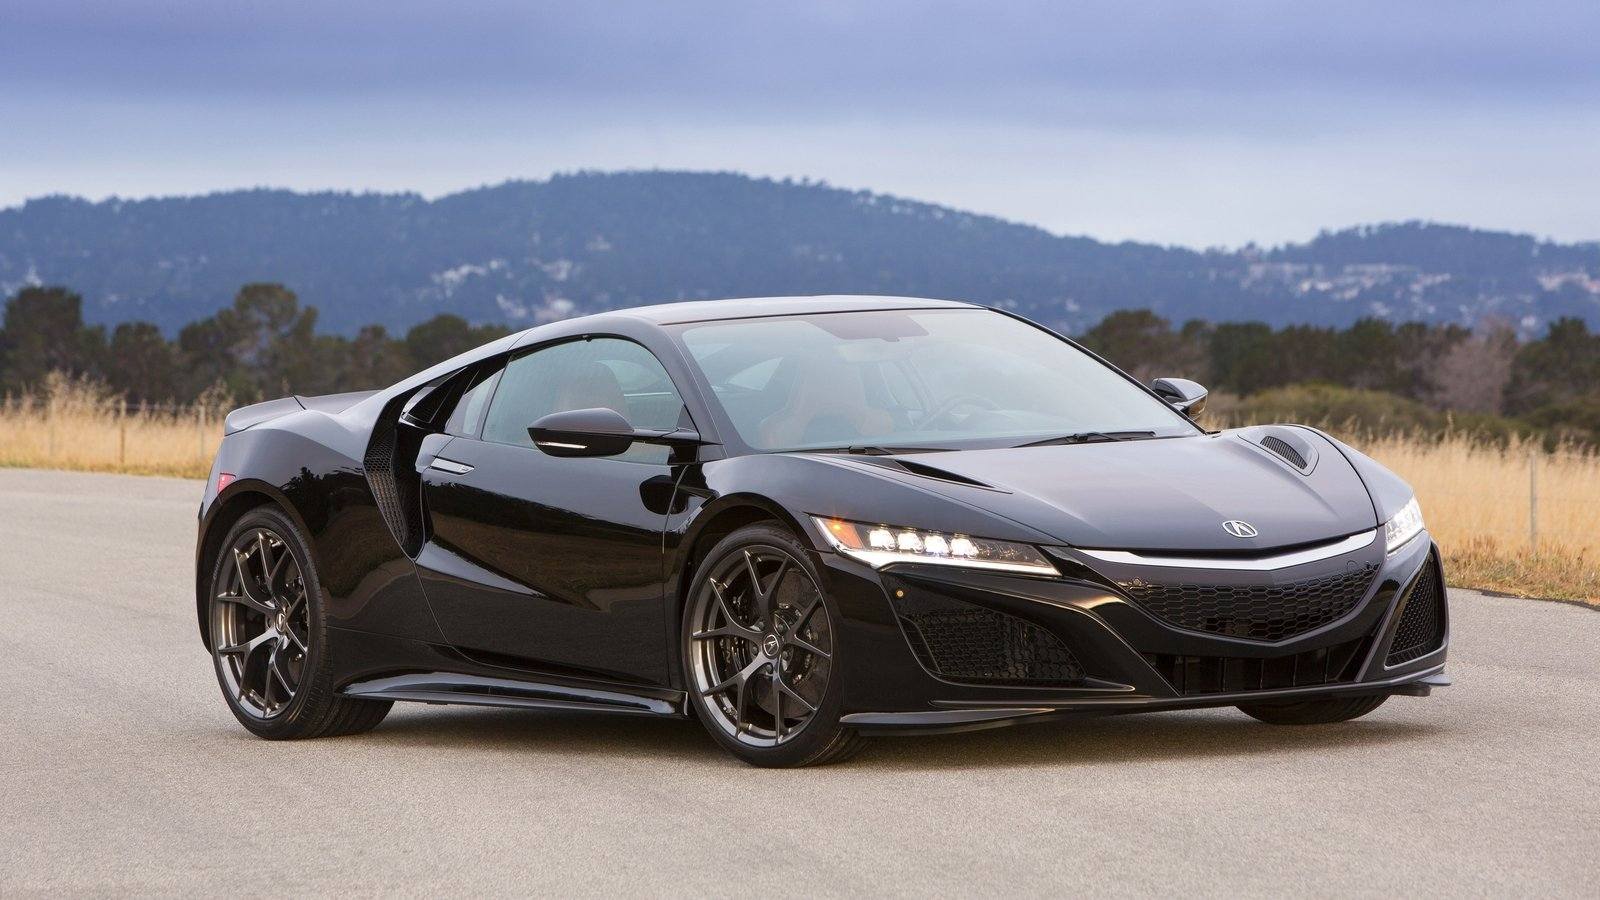 2016 acura nsx picture 640474 car review top speed. Black Bedroom Furniture Sets. Home Design Ideas